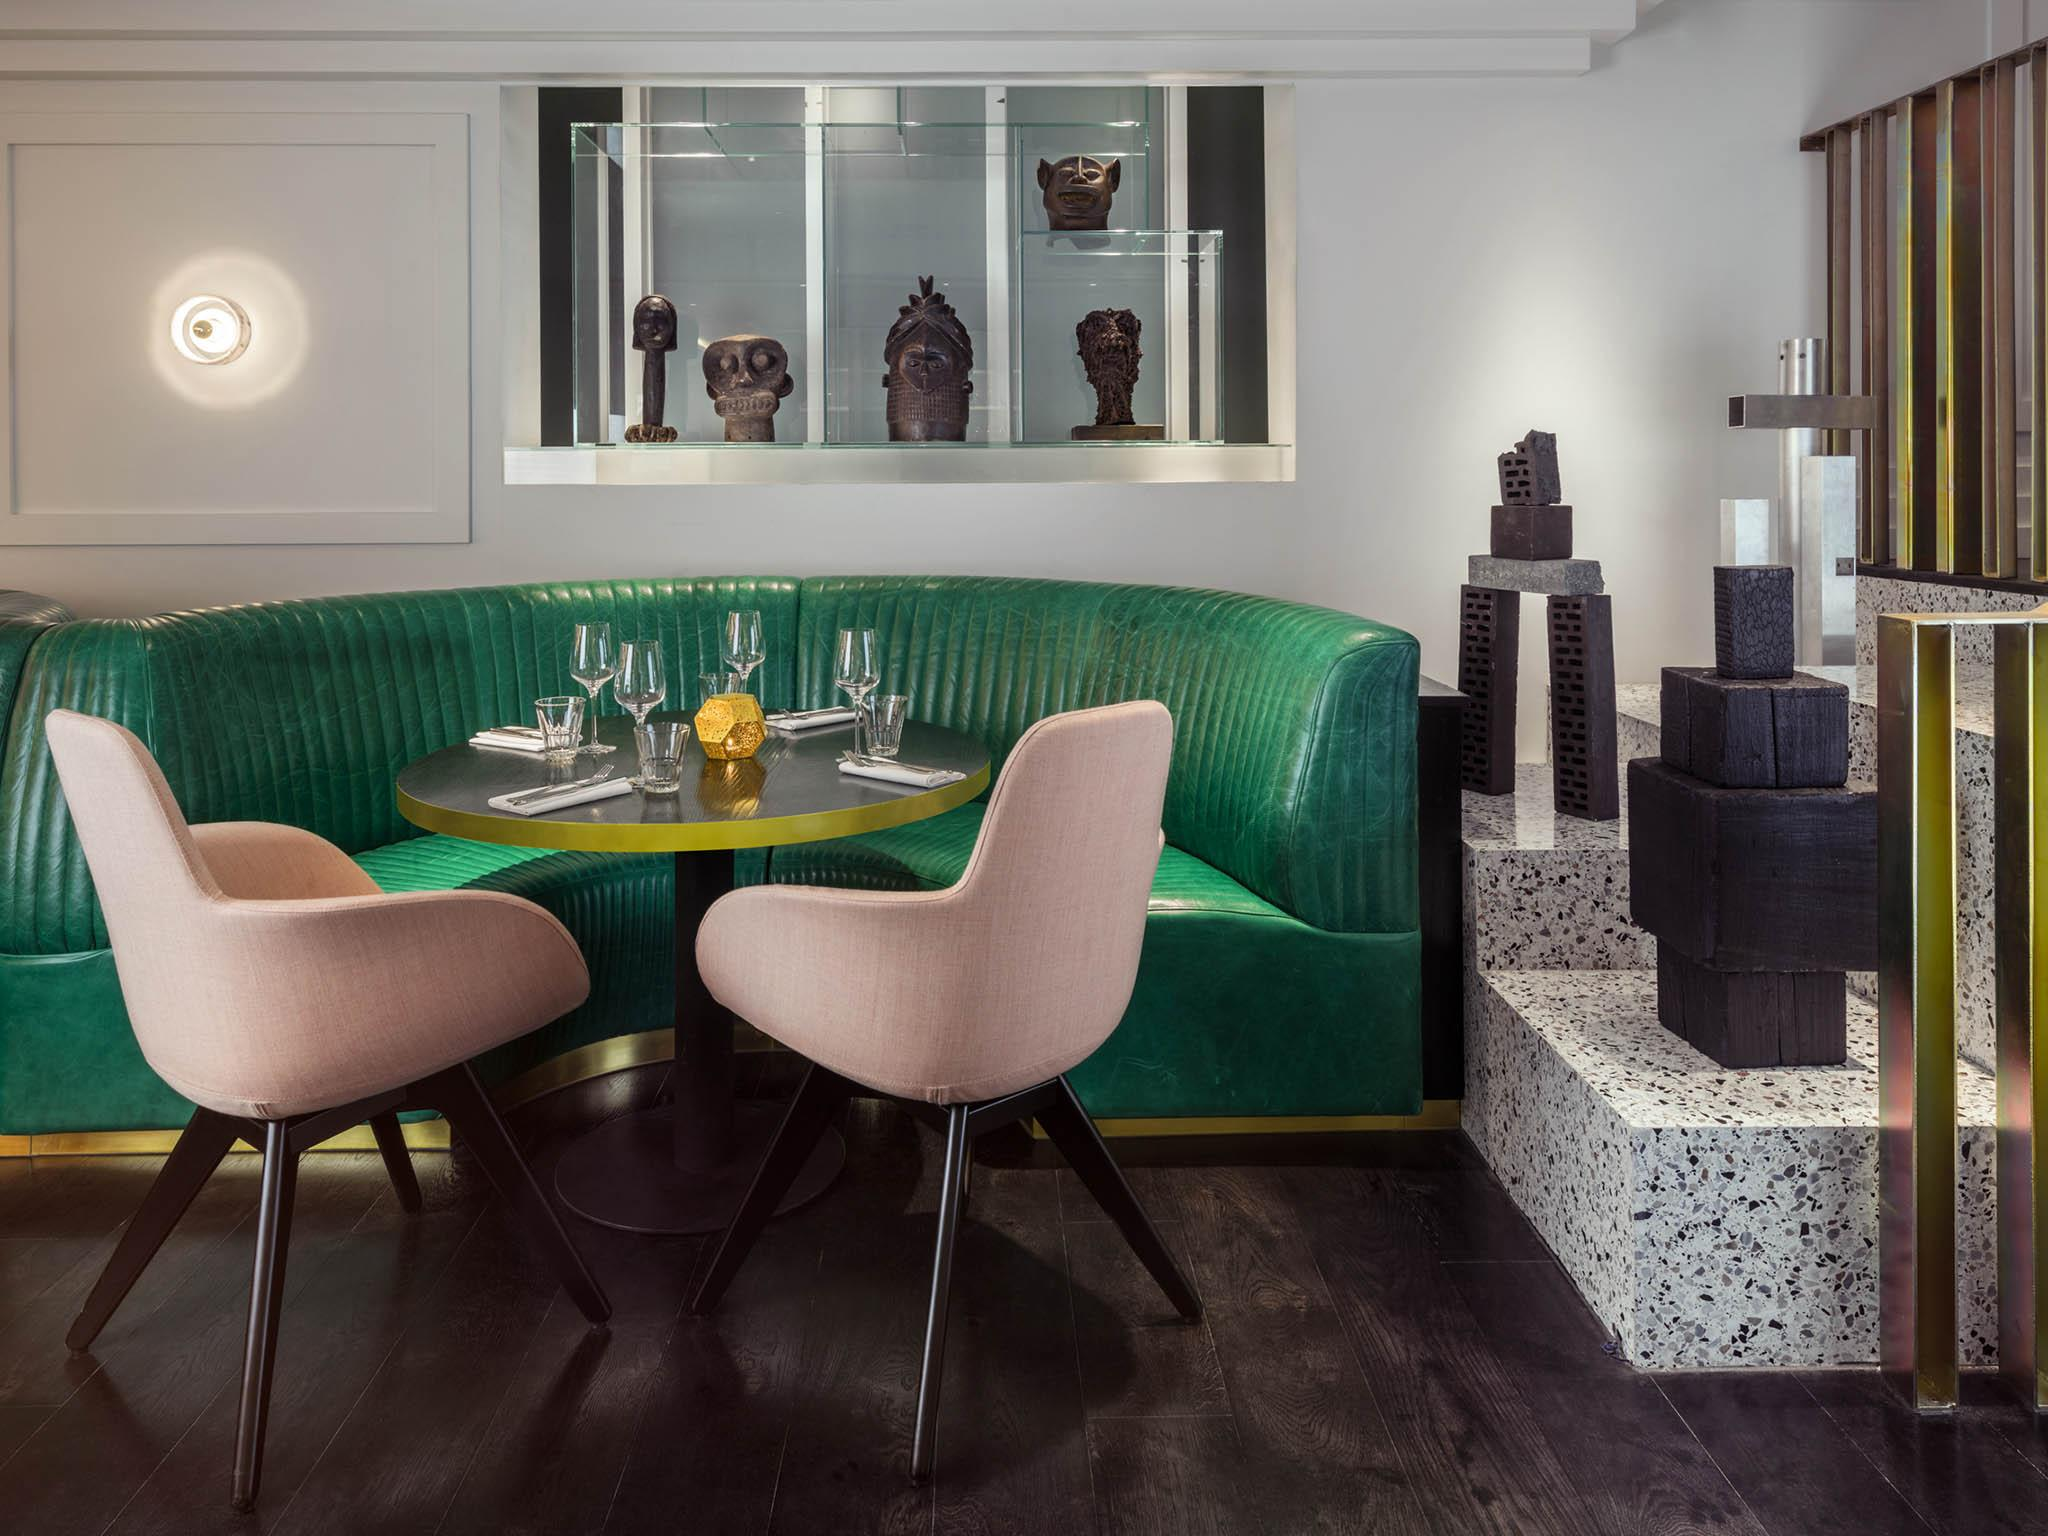 Meet The Restaurant to Eat in London with Best Lighting Designs 1 lighting design Meet The Restaurant to Eat in London with Best Lighting Designs Meet The Restaurant to Eat in London with Best Lighting Designs 5